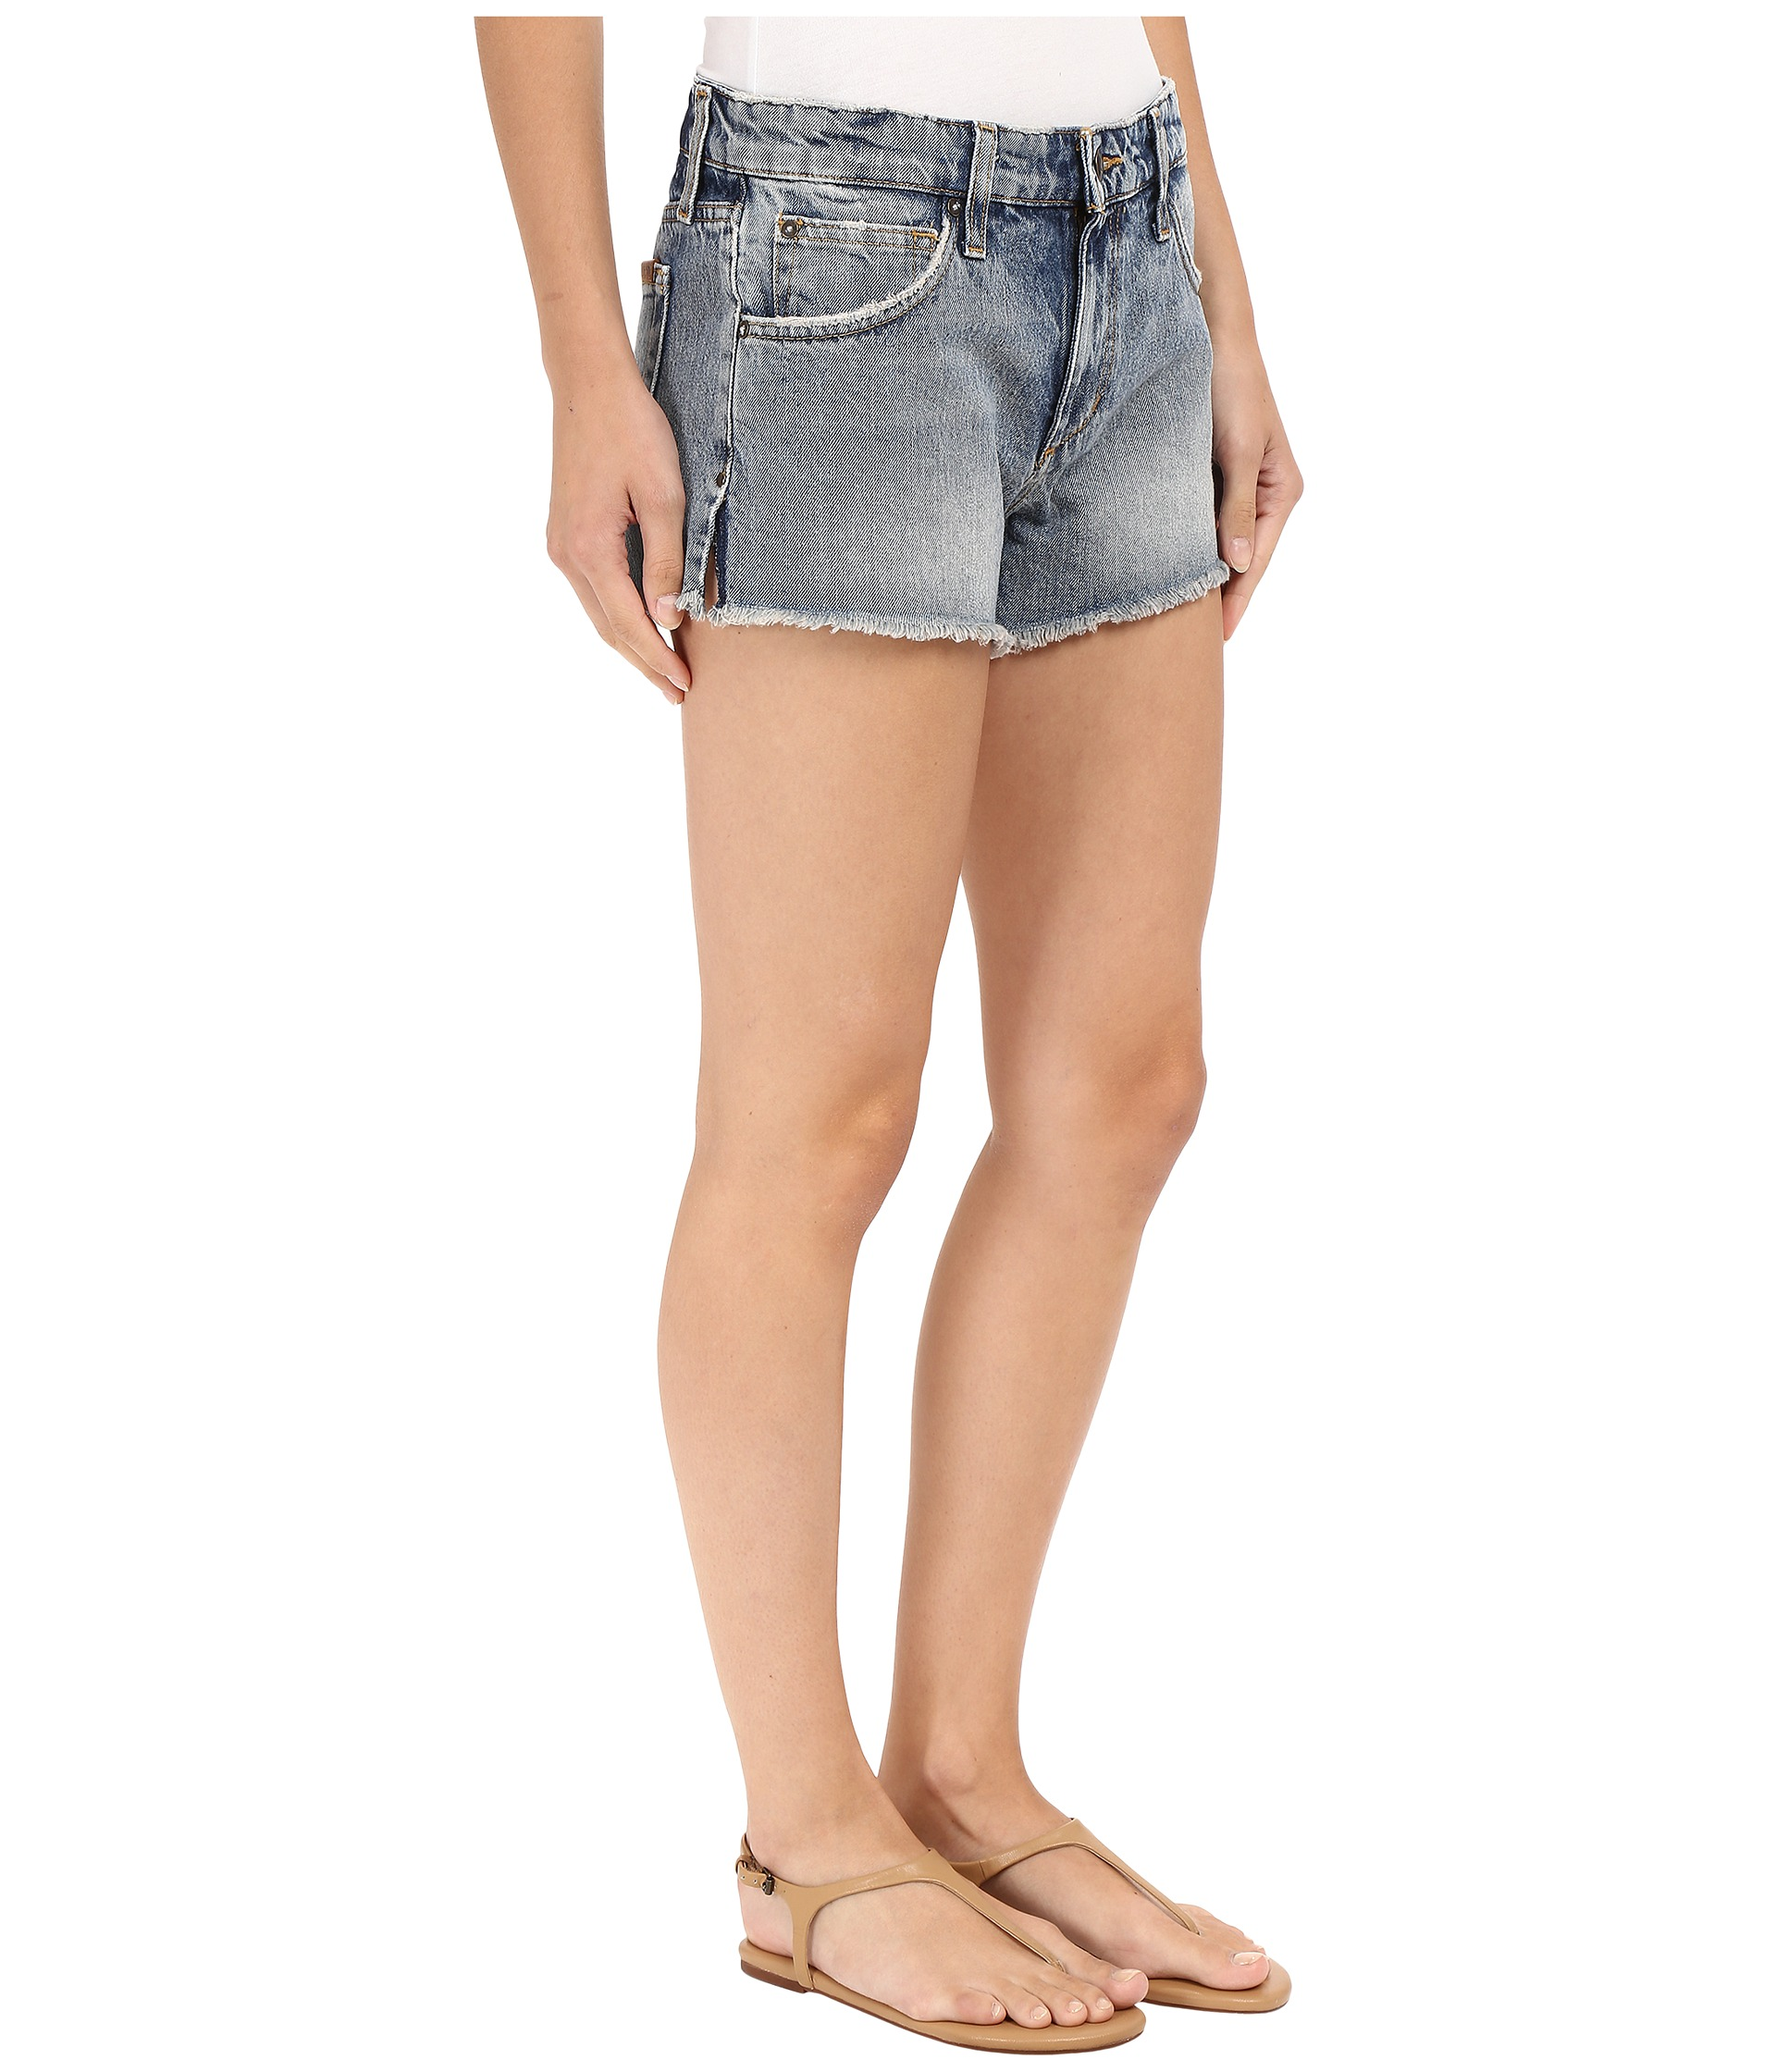 Modern slim-fit shorts with room to move, the slim shorts are a Shop Best Sellers · Deals of the Day · Fast Shipping · Read Ratings & ReviewsBrands: Vialumi, Tuesdays2, Yollmart, AG Adriano Goldschmied, HDE and more.